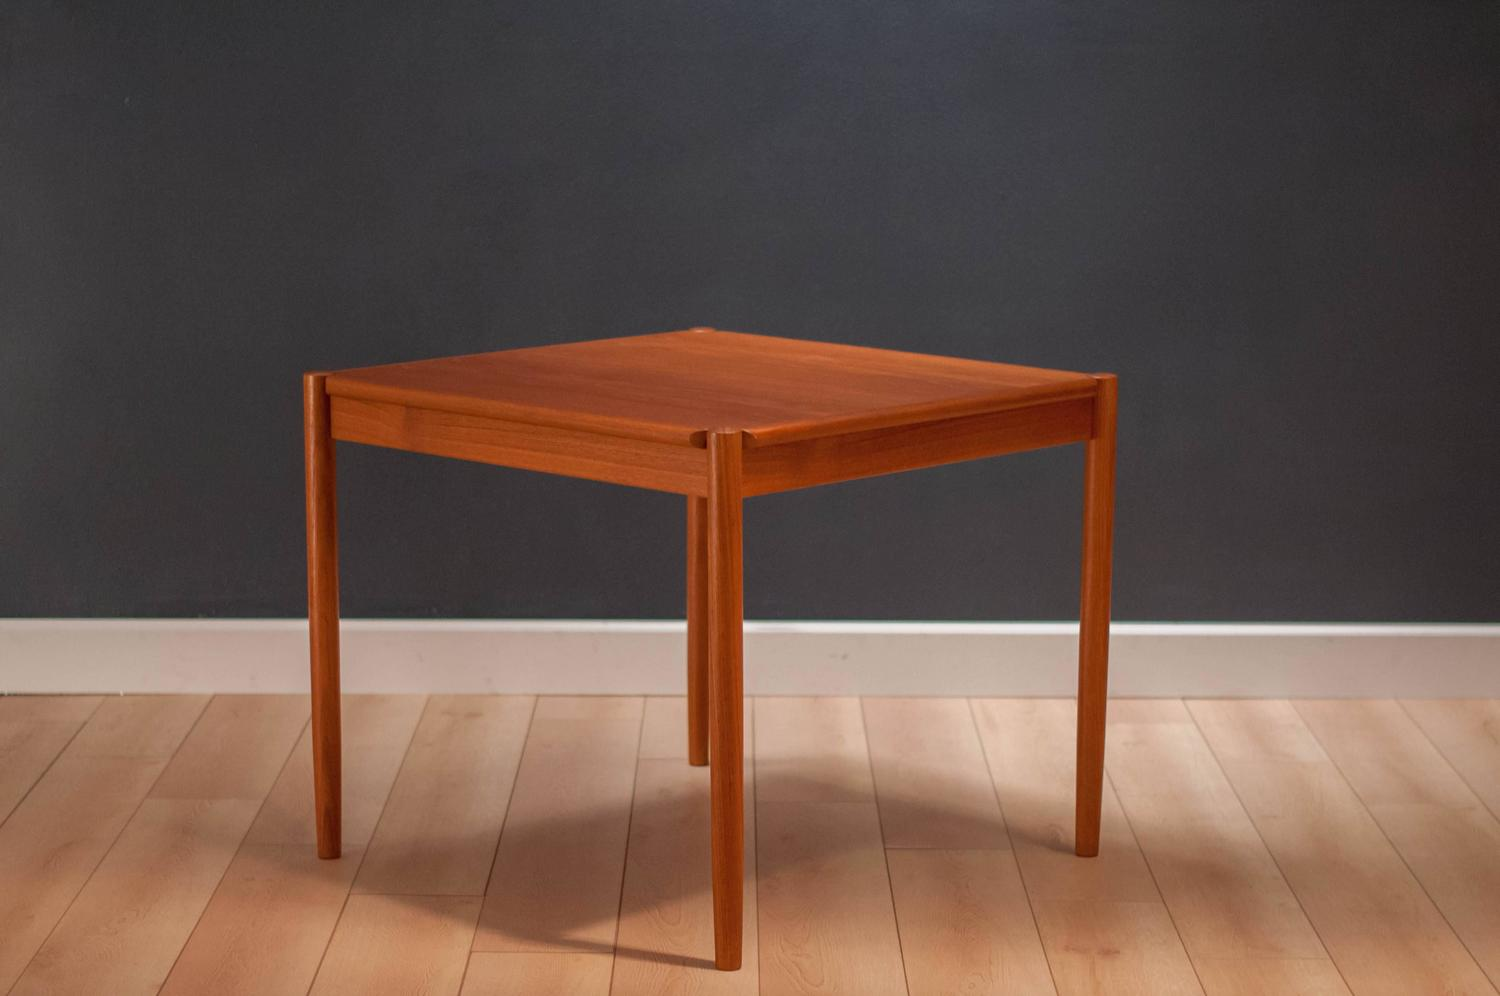 Vintage Danish Teak And Leather Flip Top Dining Table For